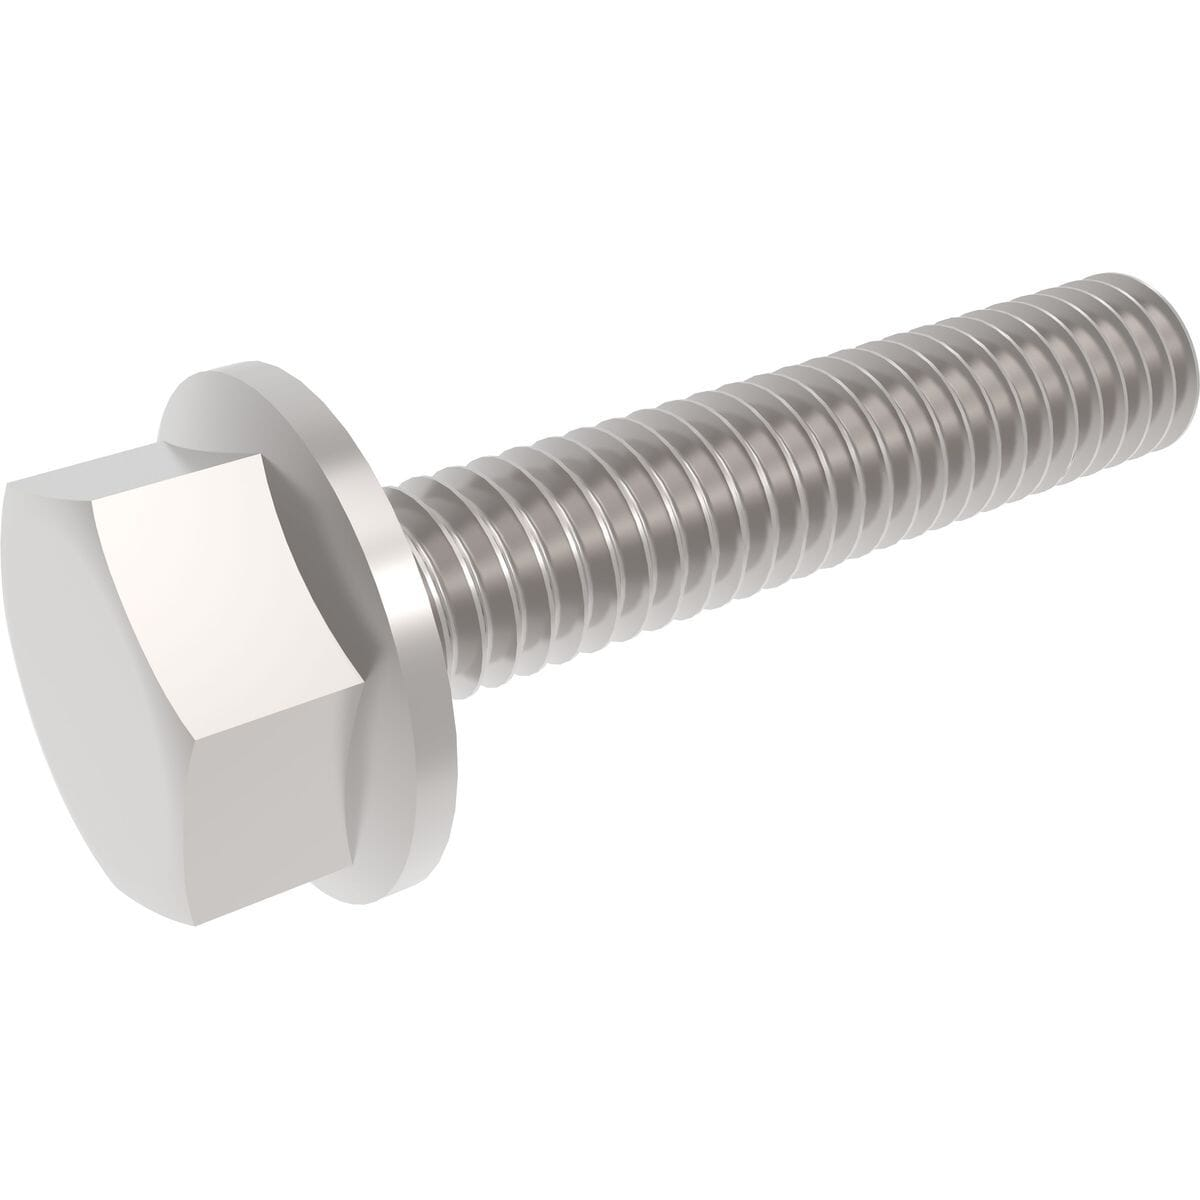 M10 x 55mm Flanged Hexagon Bolts (DIN 6921) - Marine Stainless Steel (A4)